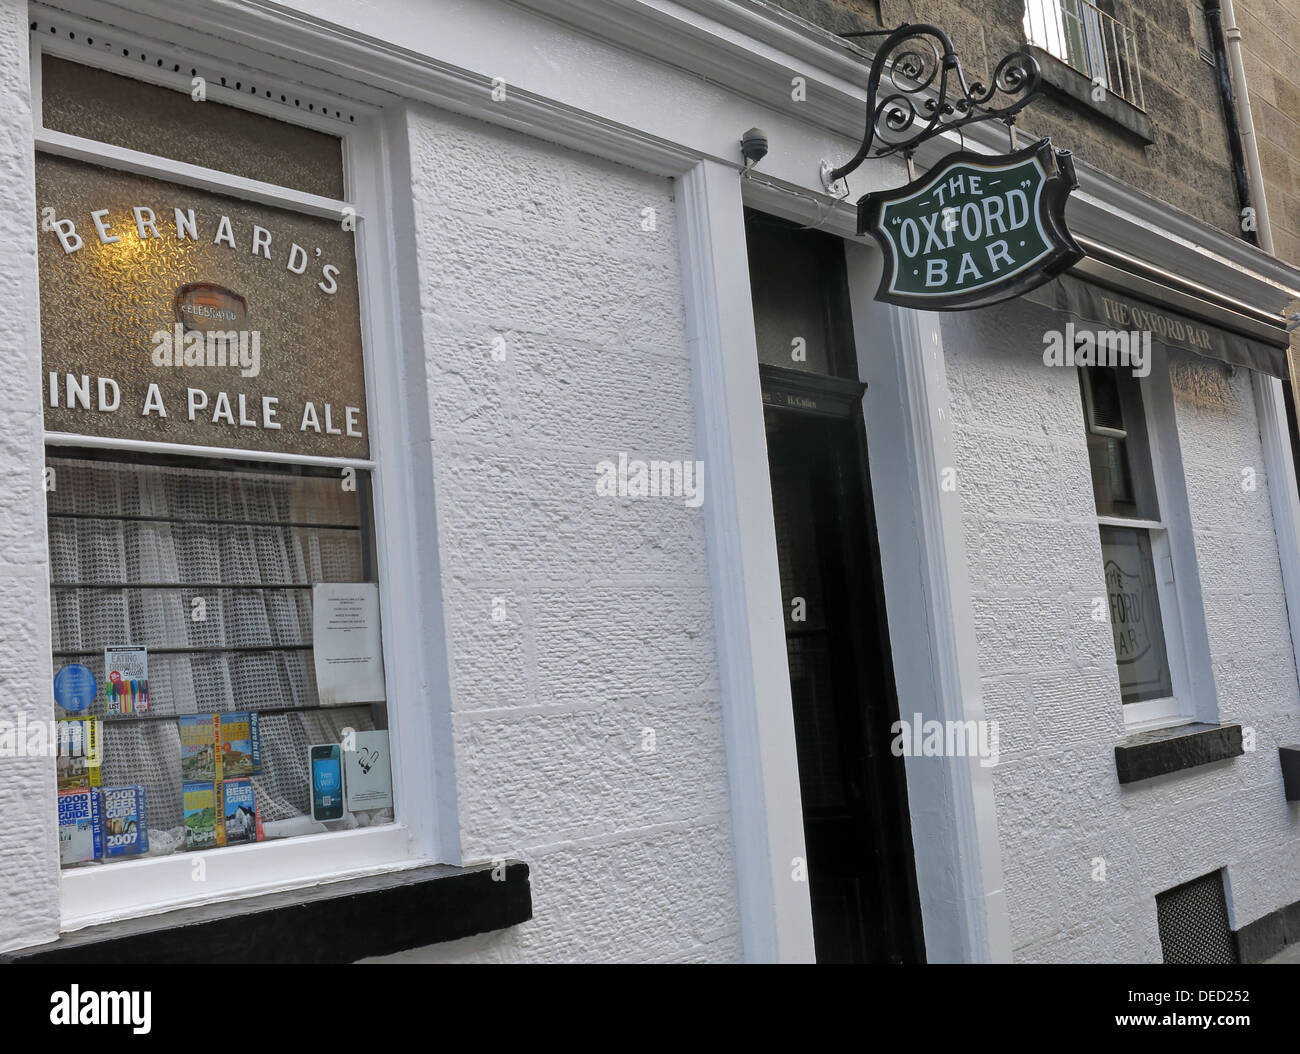 Oxford Bar Exterior A Public house situated on Young Street, in the New Town of Edinburgh, Scotland. Inspector Rebus's - Stock Image